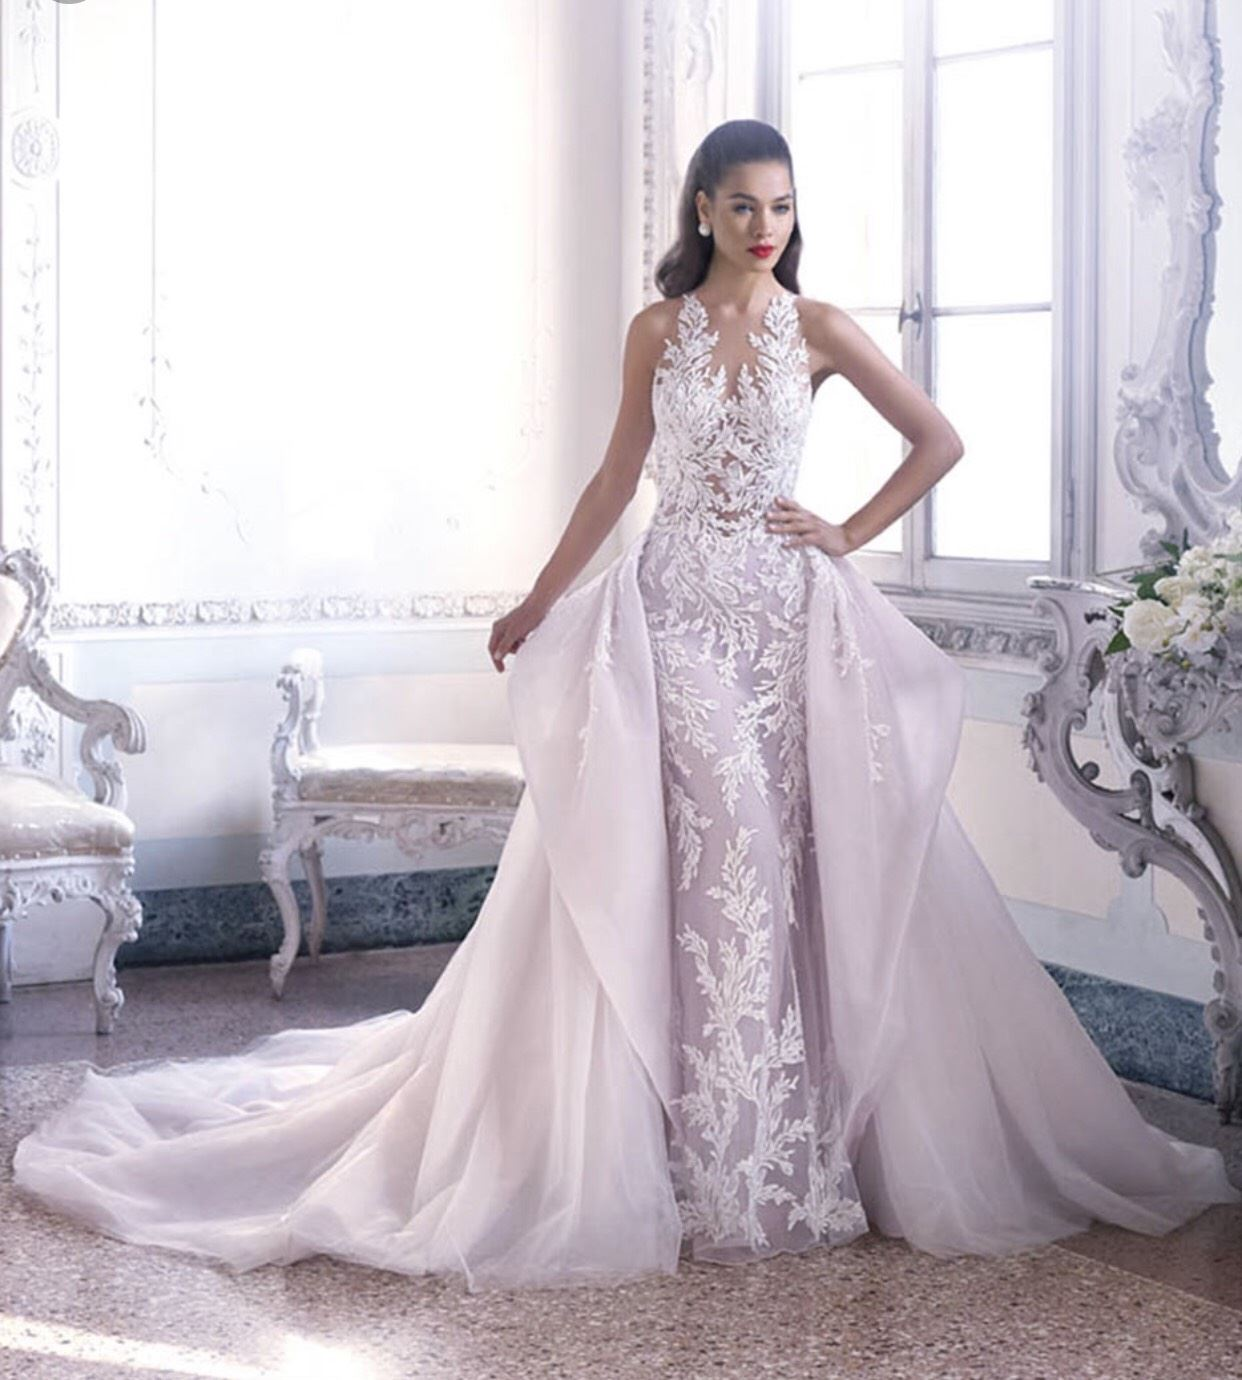 demetrios wedding dress ana's bridal boutique rhode island